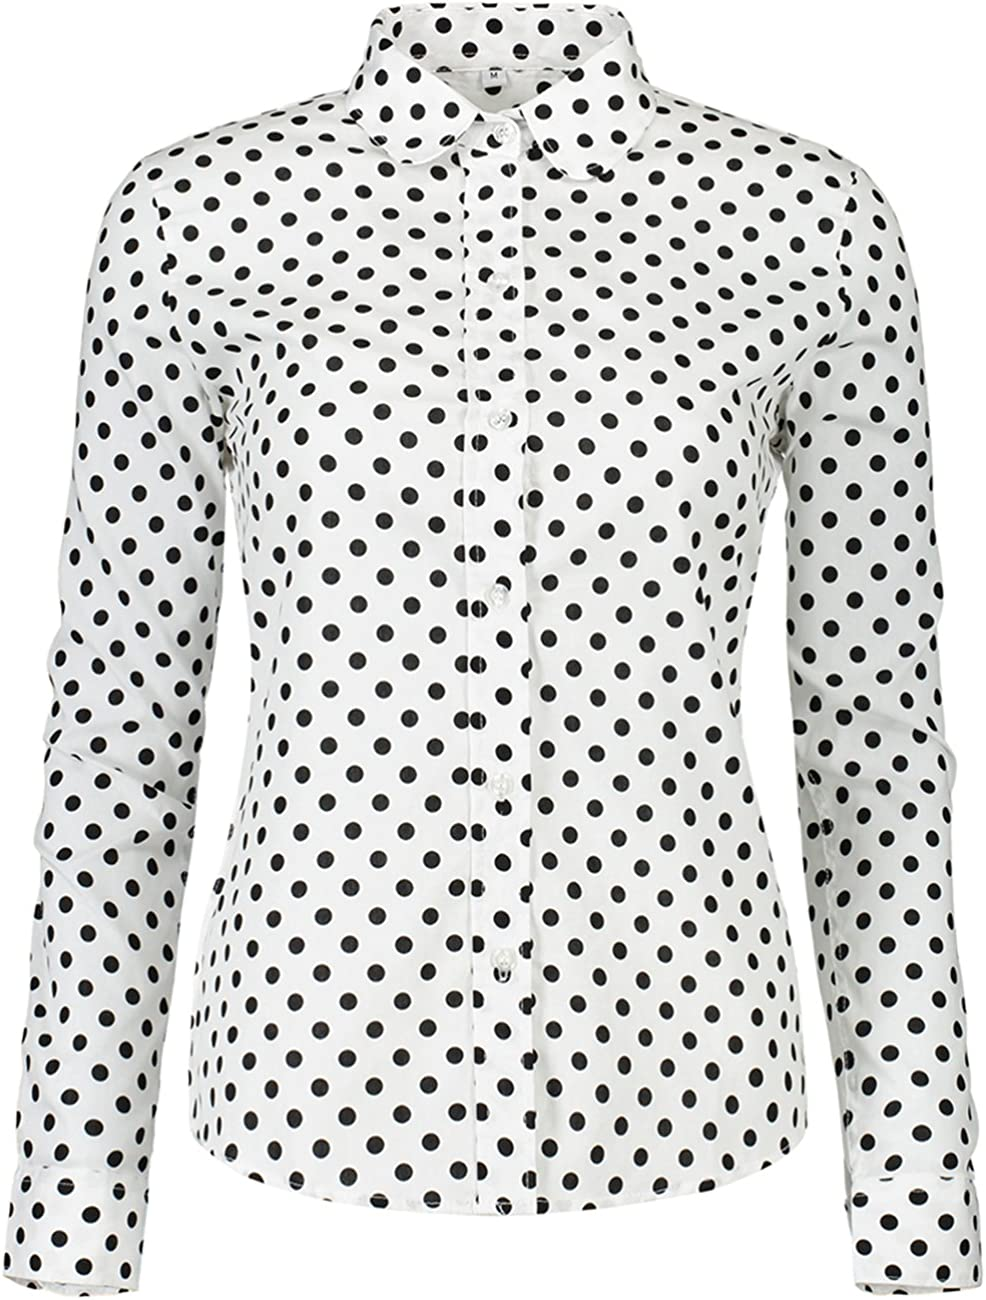 ERZTIAY Women's Tops Feminine Long Sleeve Polka Dotted Button Down Casual Dress Blouses Shirts